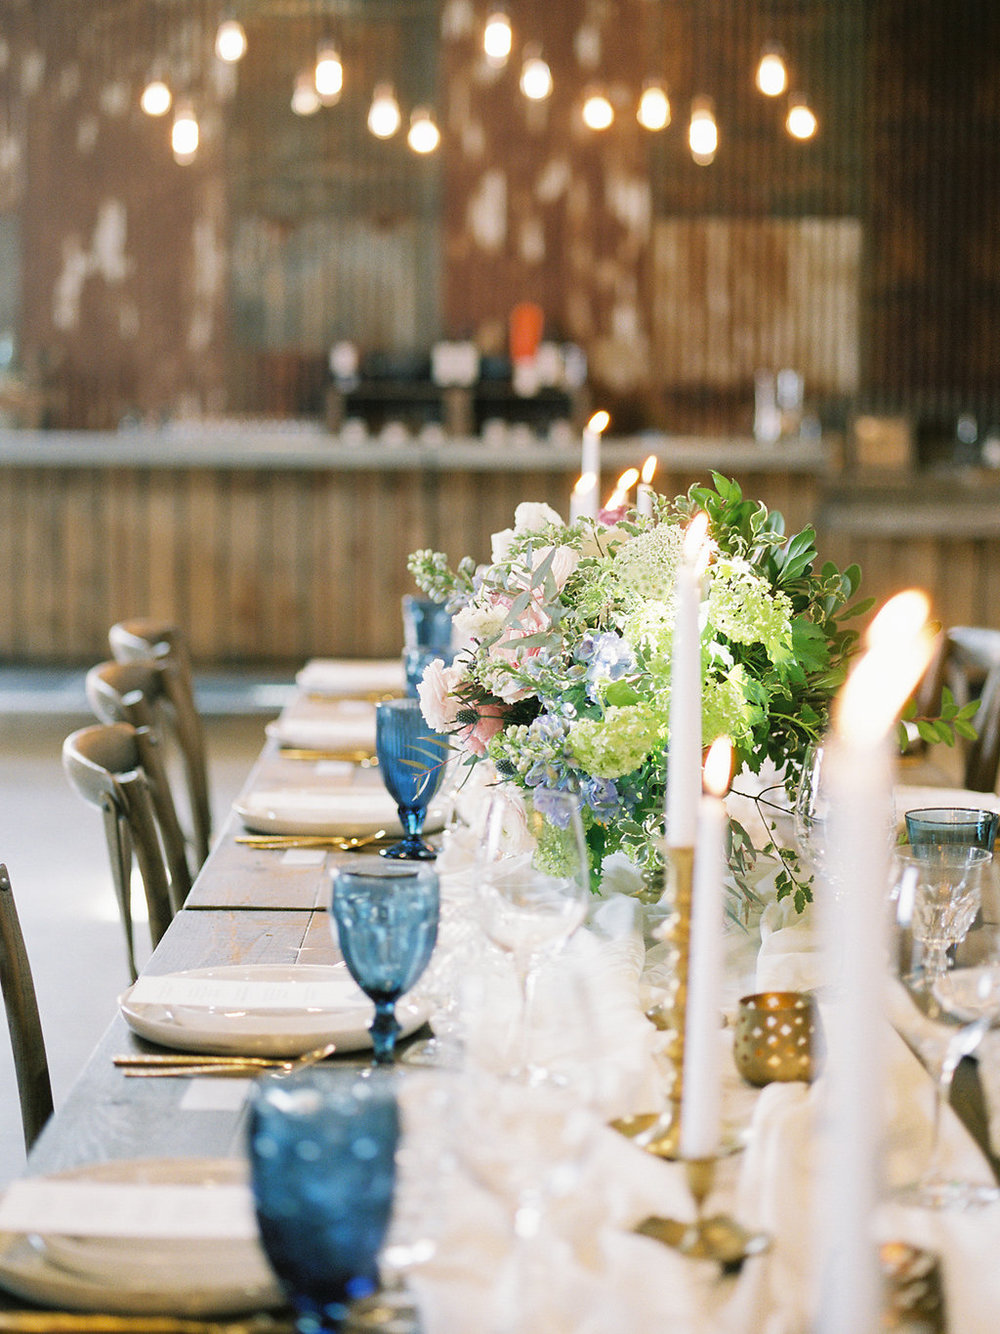 Photography @heatherandersonphotography  Inspiration and Design @whimsically_wed Dress @cherielizabethcollection Tux @theblacktux Jewlery @nikscandi Invitations, Menus, Name Cards @ashleydevindesigns Venue @peltzerwinery Vow Books @penscripton6th Table Top Décor @notmydish Mobile Bar @whiskeyandwildflowers_ Cake @cakestocelebrate Lounge Set @rusticurbanevents Florist @peoniesandpetals Hair and Makeup @thejacquiek Models @willowmodels Shoes @bellabelleshoes  Ring Box @the_mrs_box Film Lab @thefindlab